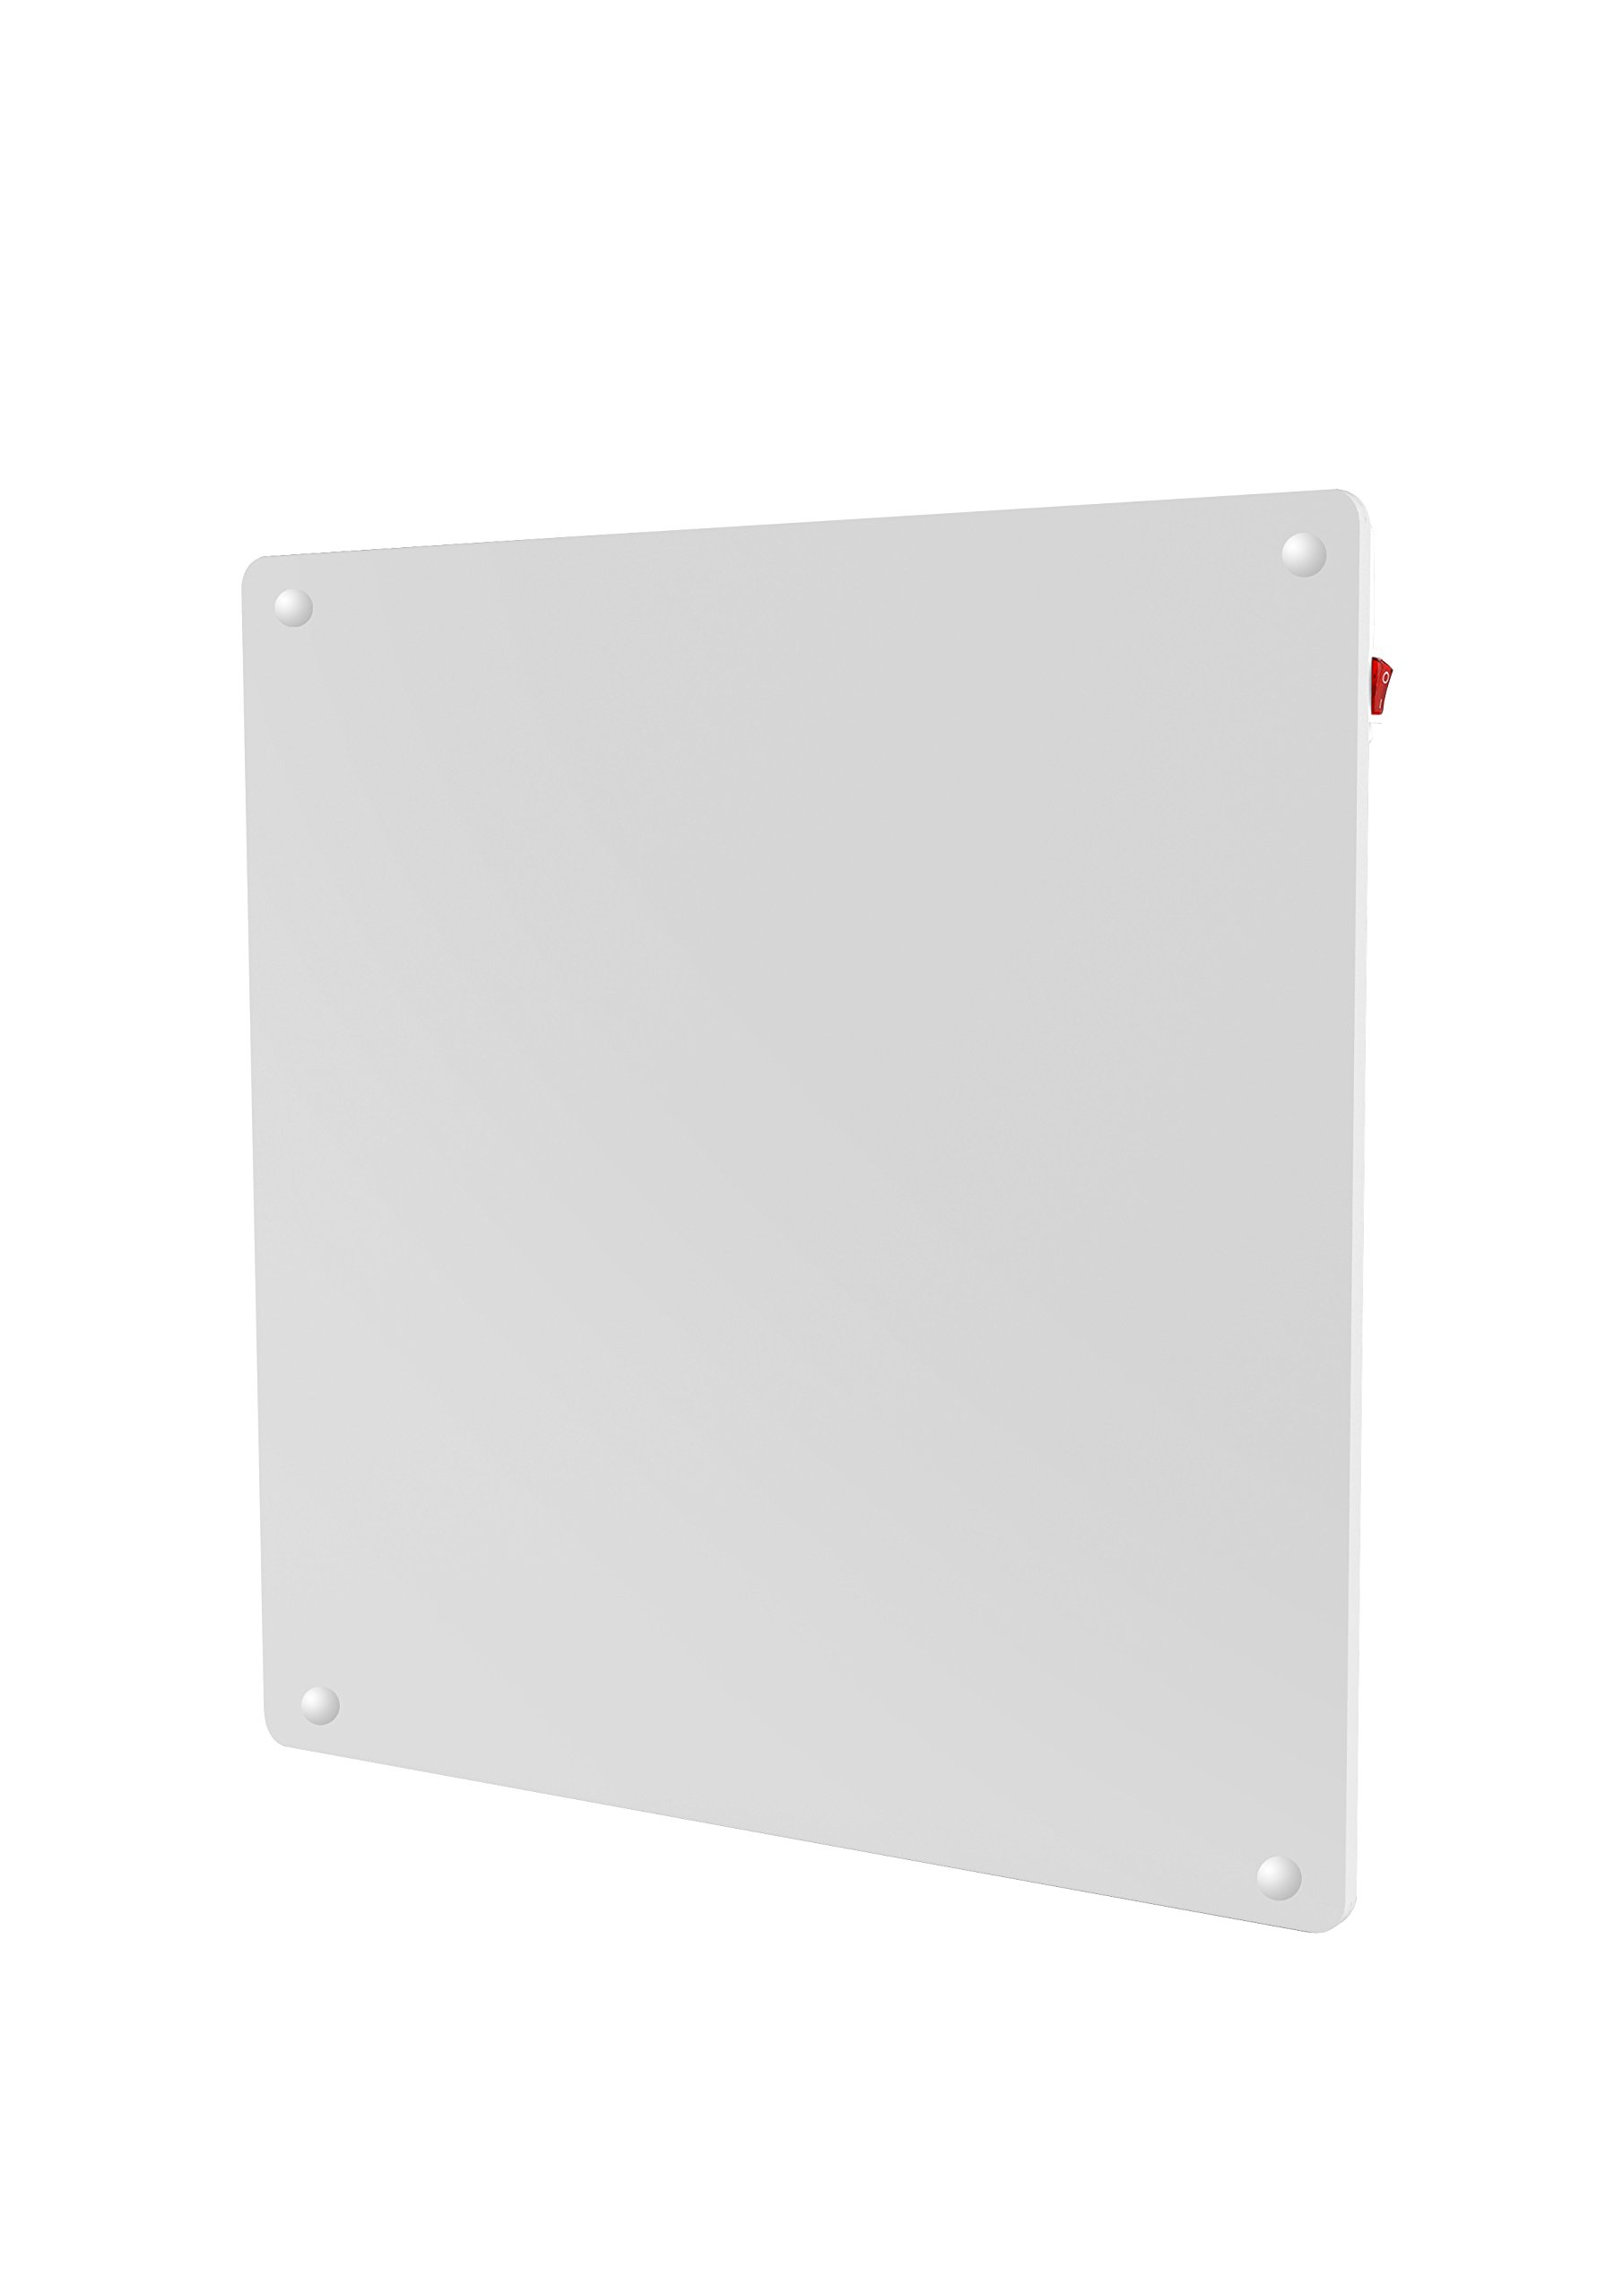 Health Rite Wall Convection Panel Heater PH-08H